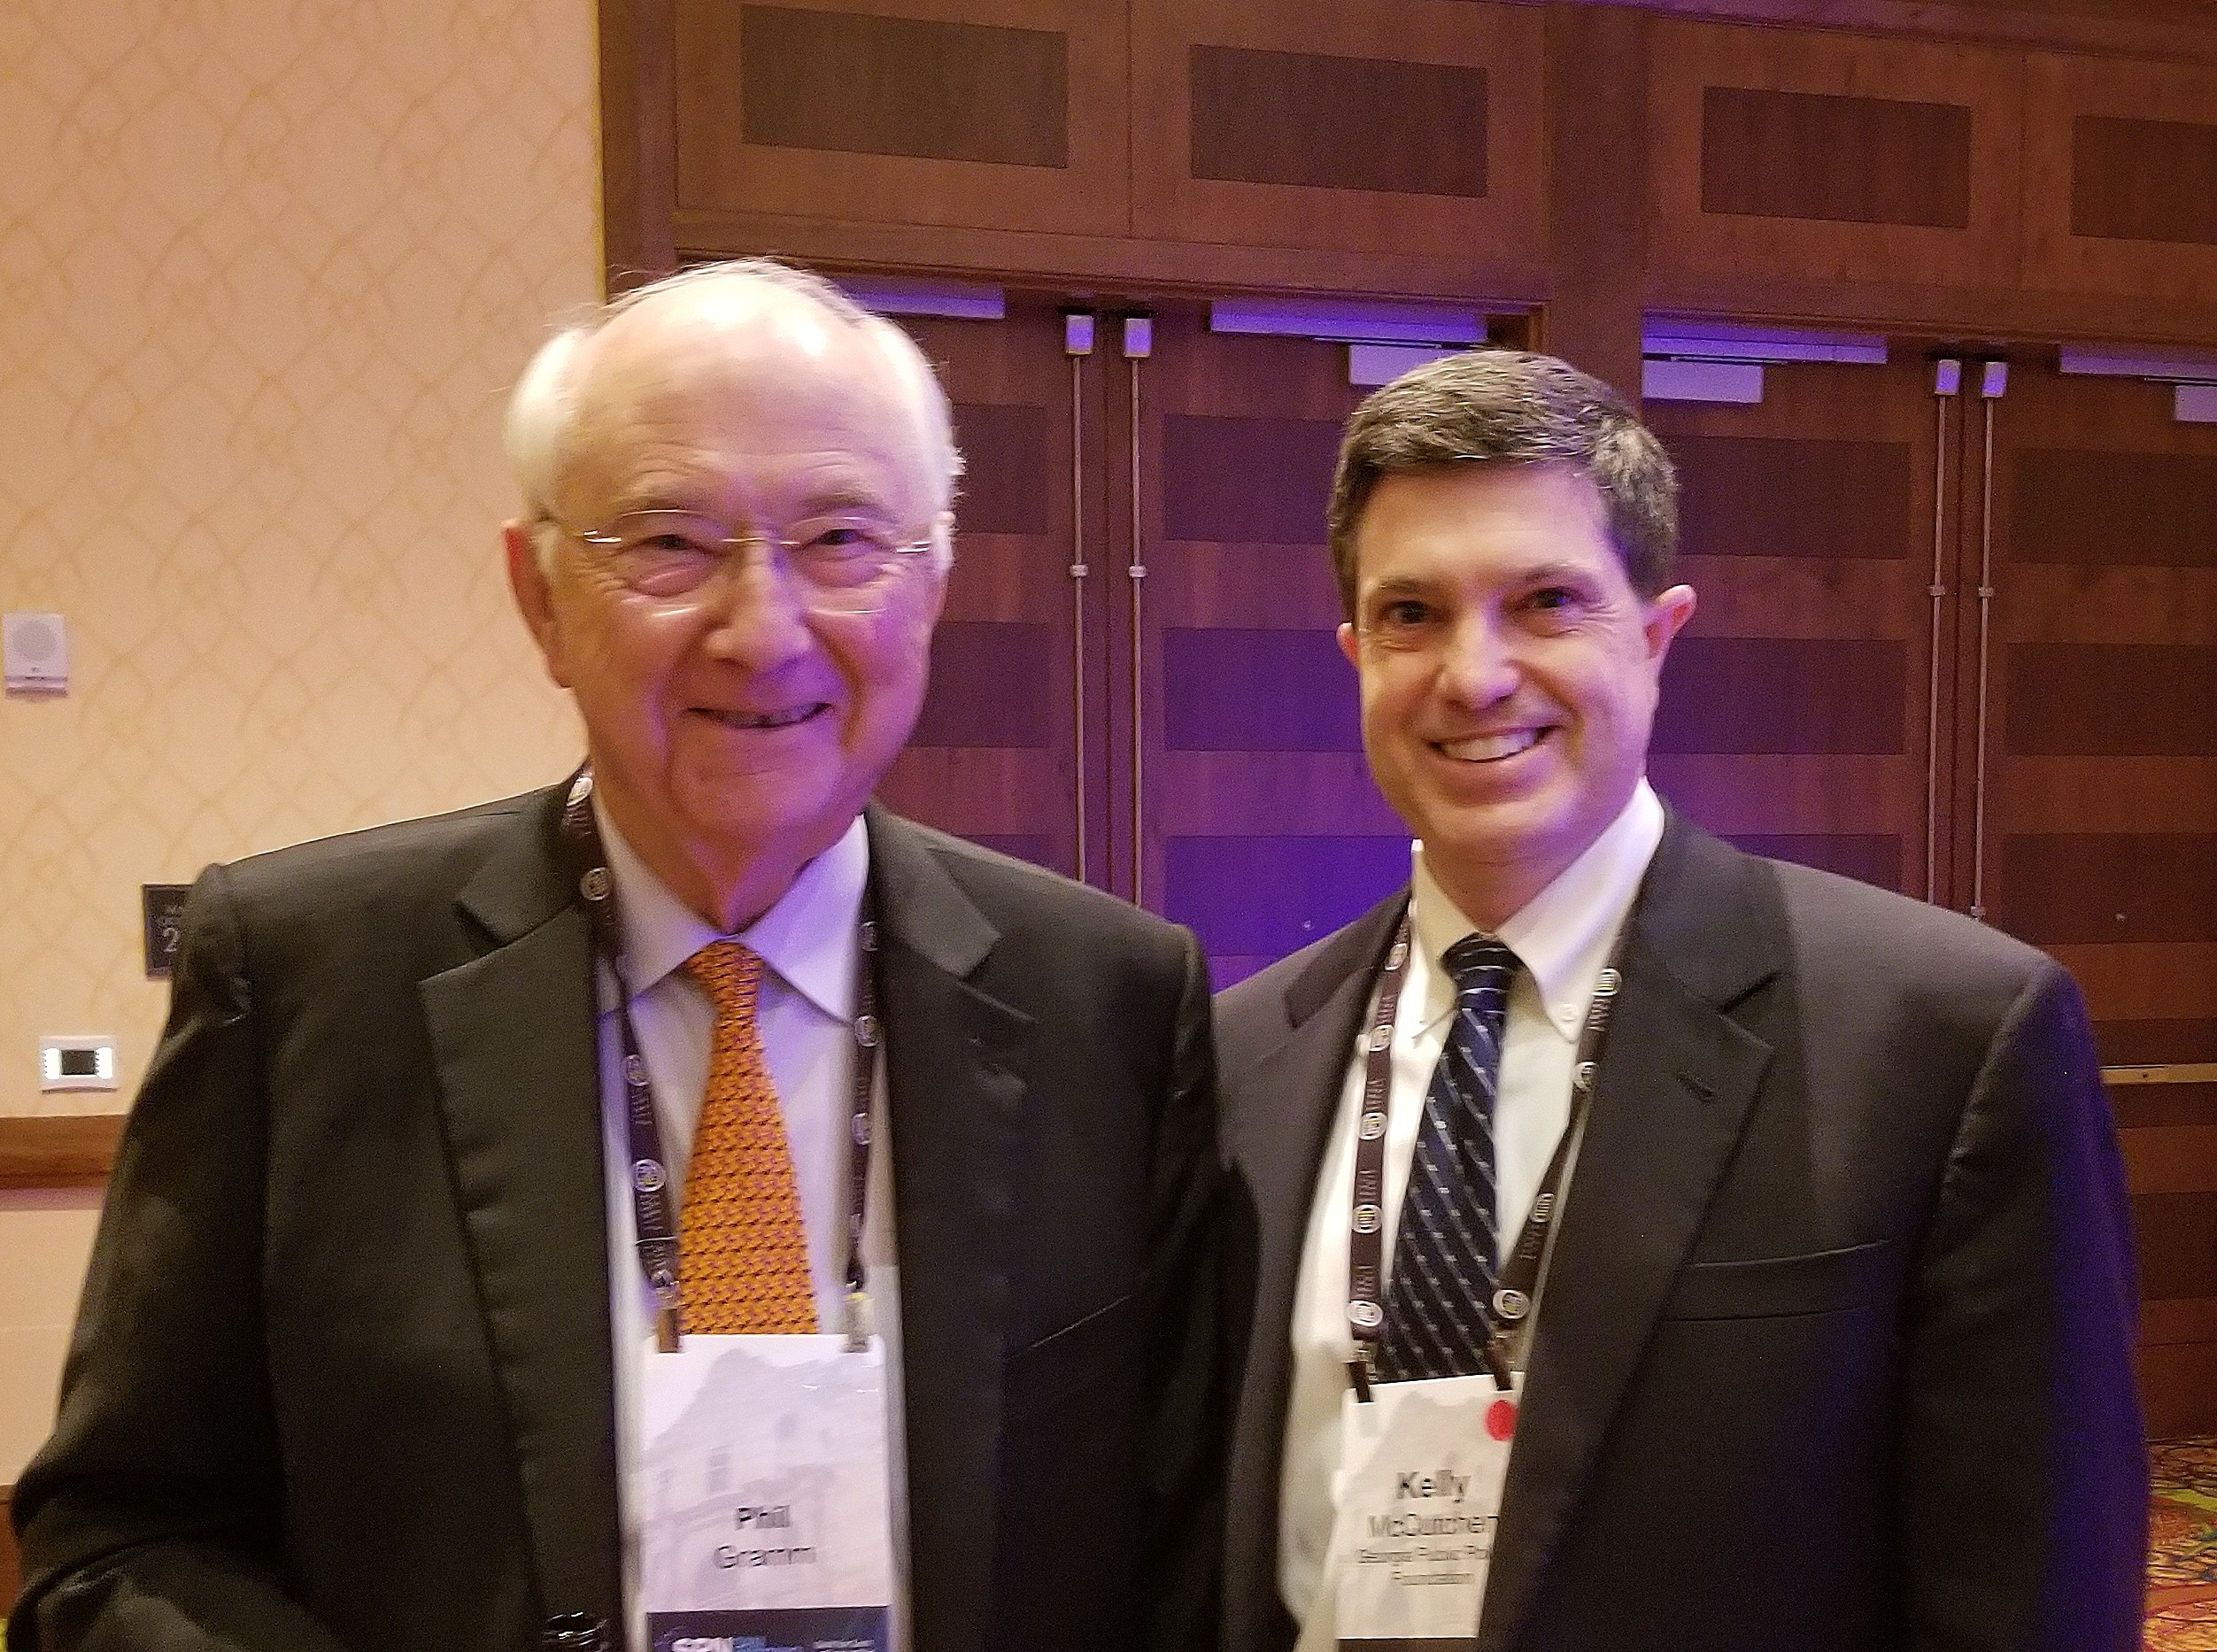 Georgia native and former Senator Phil Gramm and Foundation President Kelly McCutchen reminisced at the Right on Crime dinner during the State Policy Network annual conference in San Antonio, Texas. Gramm is a recipient of the Foundation's Freedom Award; his wife, Wendy, is board chairman of the Texas Public Policy Foundation.